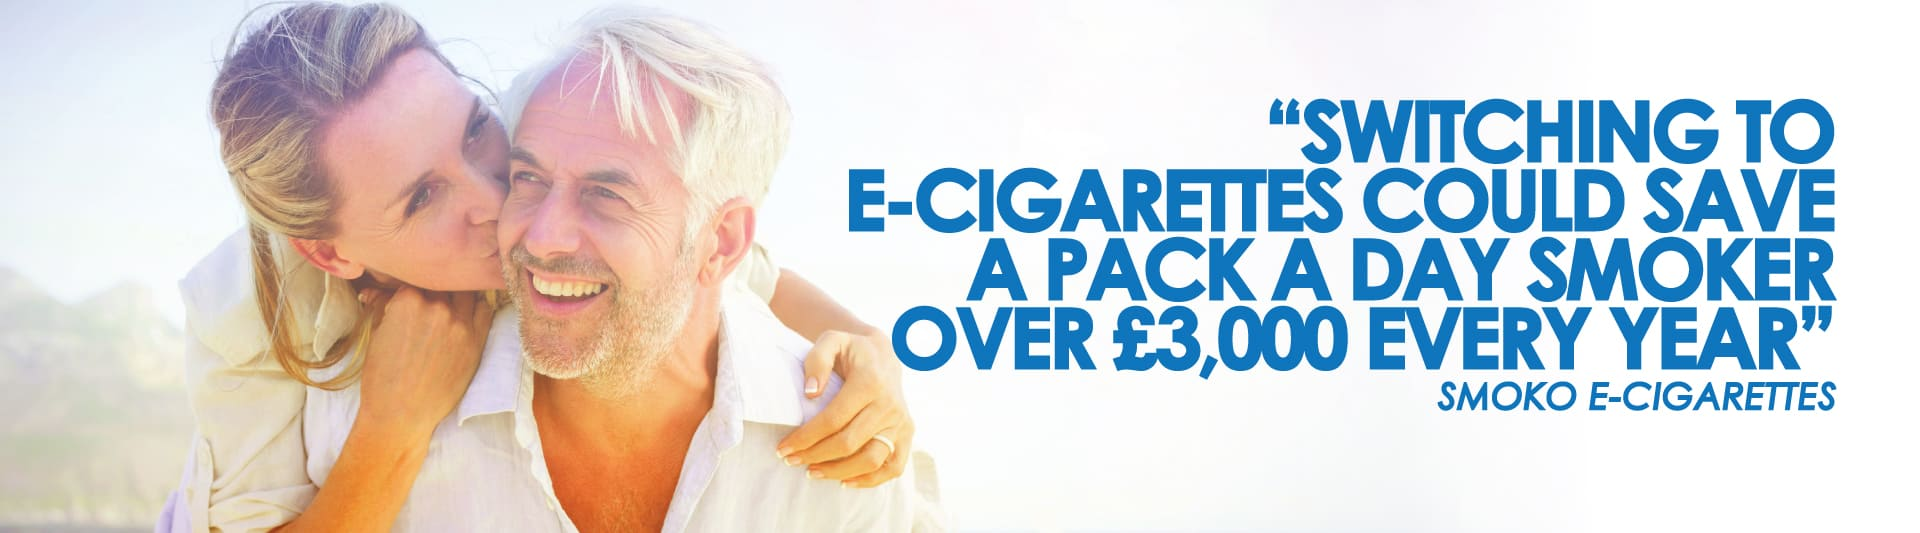 switching to e-cigarettes could save a pack-a-day smoker over £3000 every year